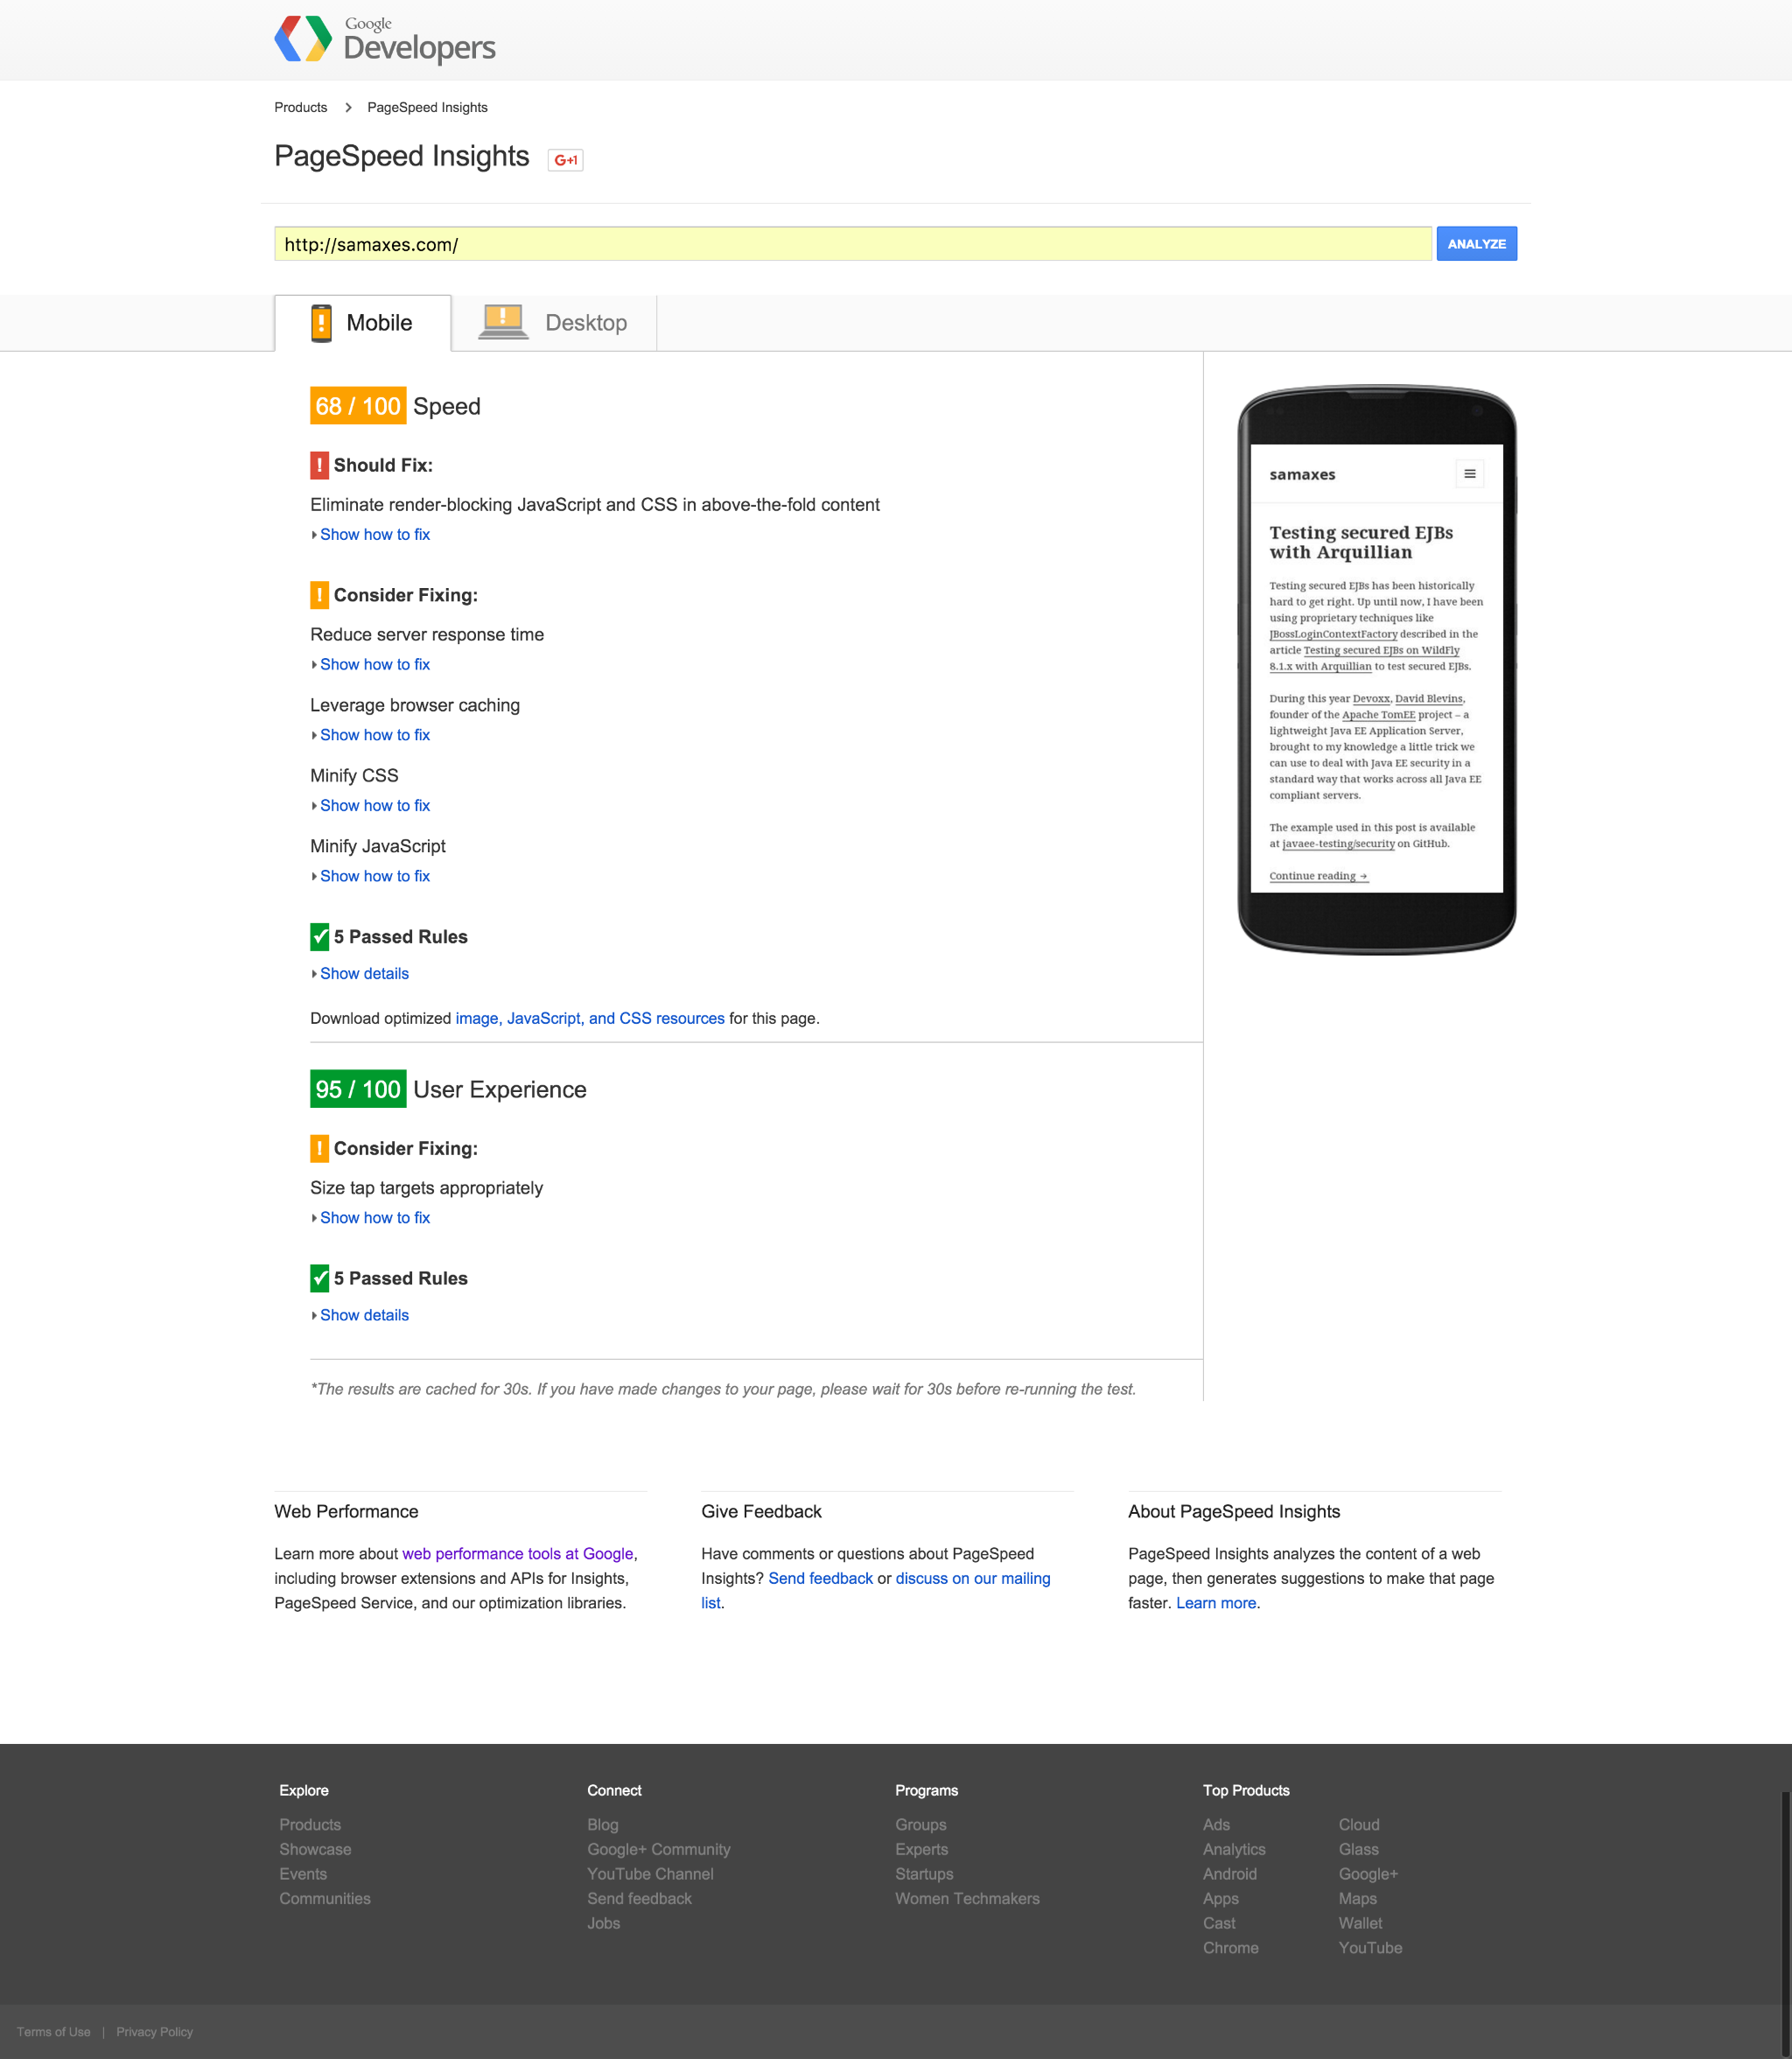 PageSpeed Insights for the mobile with WordPress hosted on DigitalOcean.